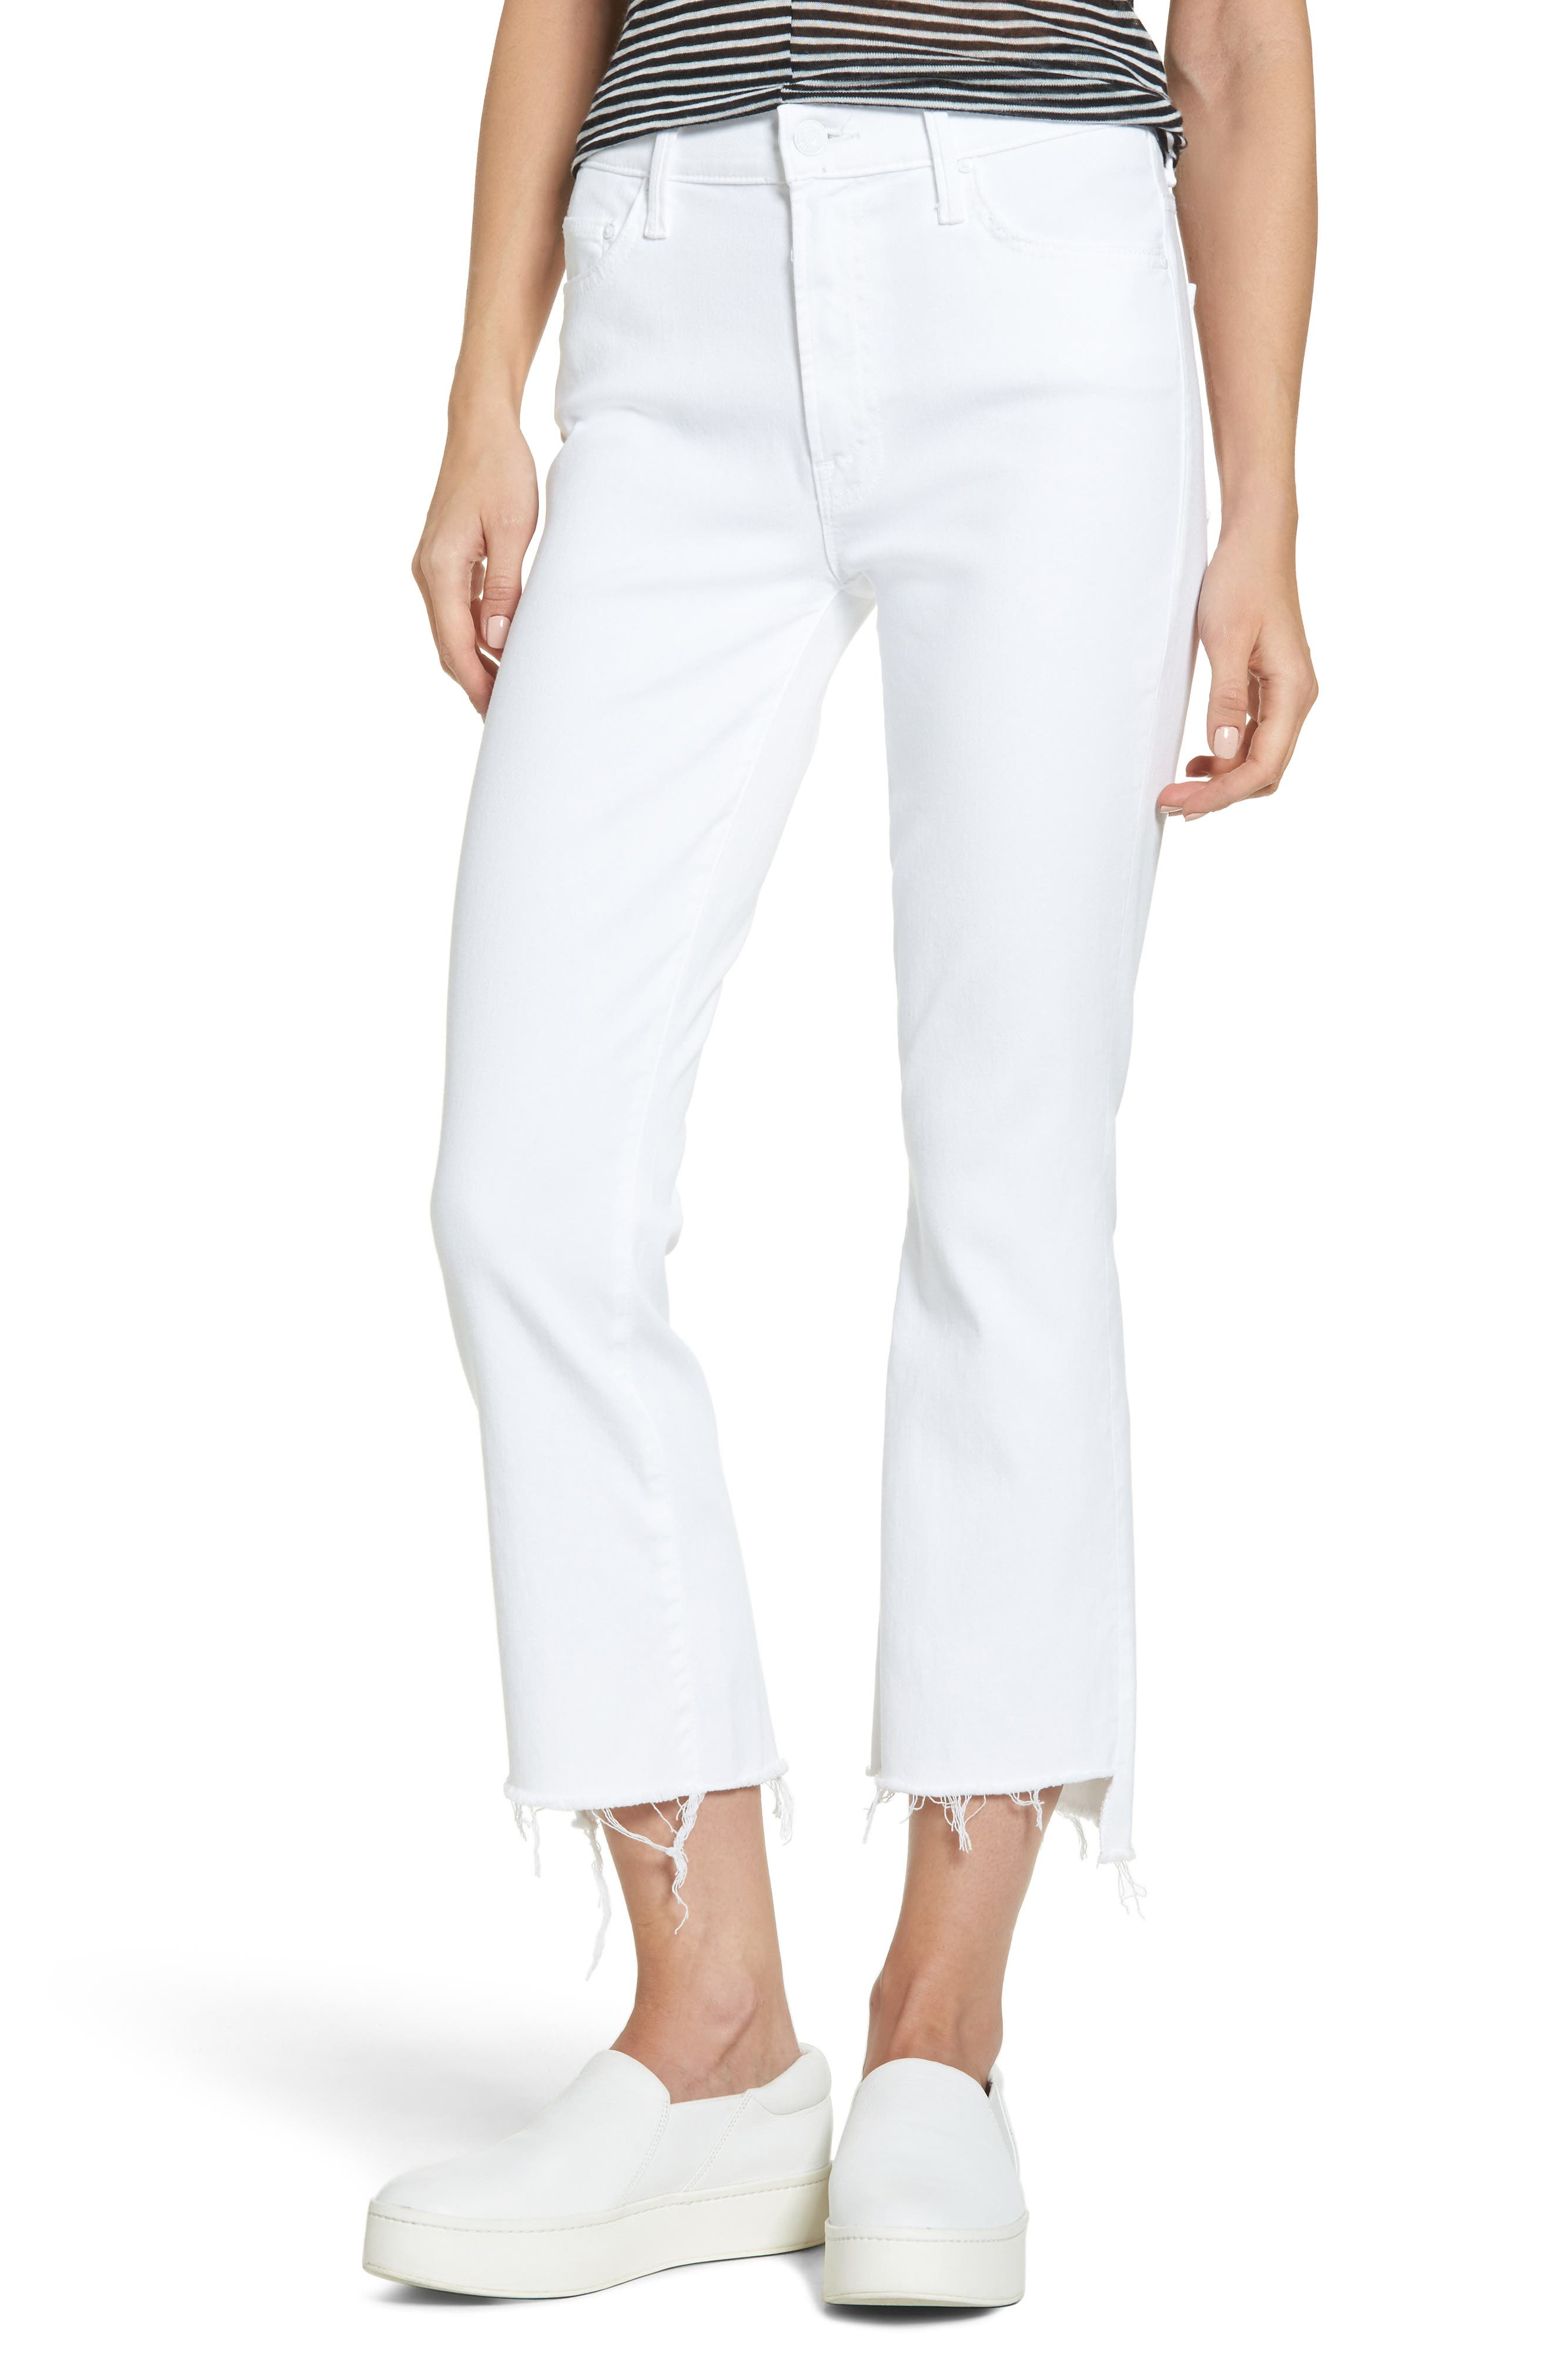 MOTHER, The Insider Step Hem Crop Bootcut Jeans, Main thumbnail 1, color, 100